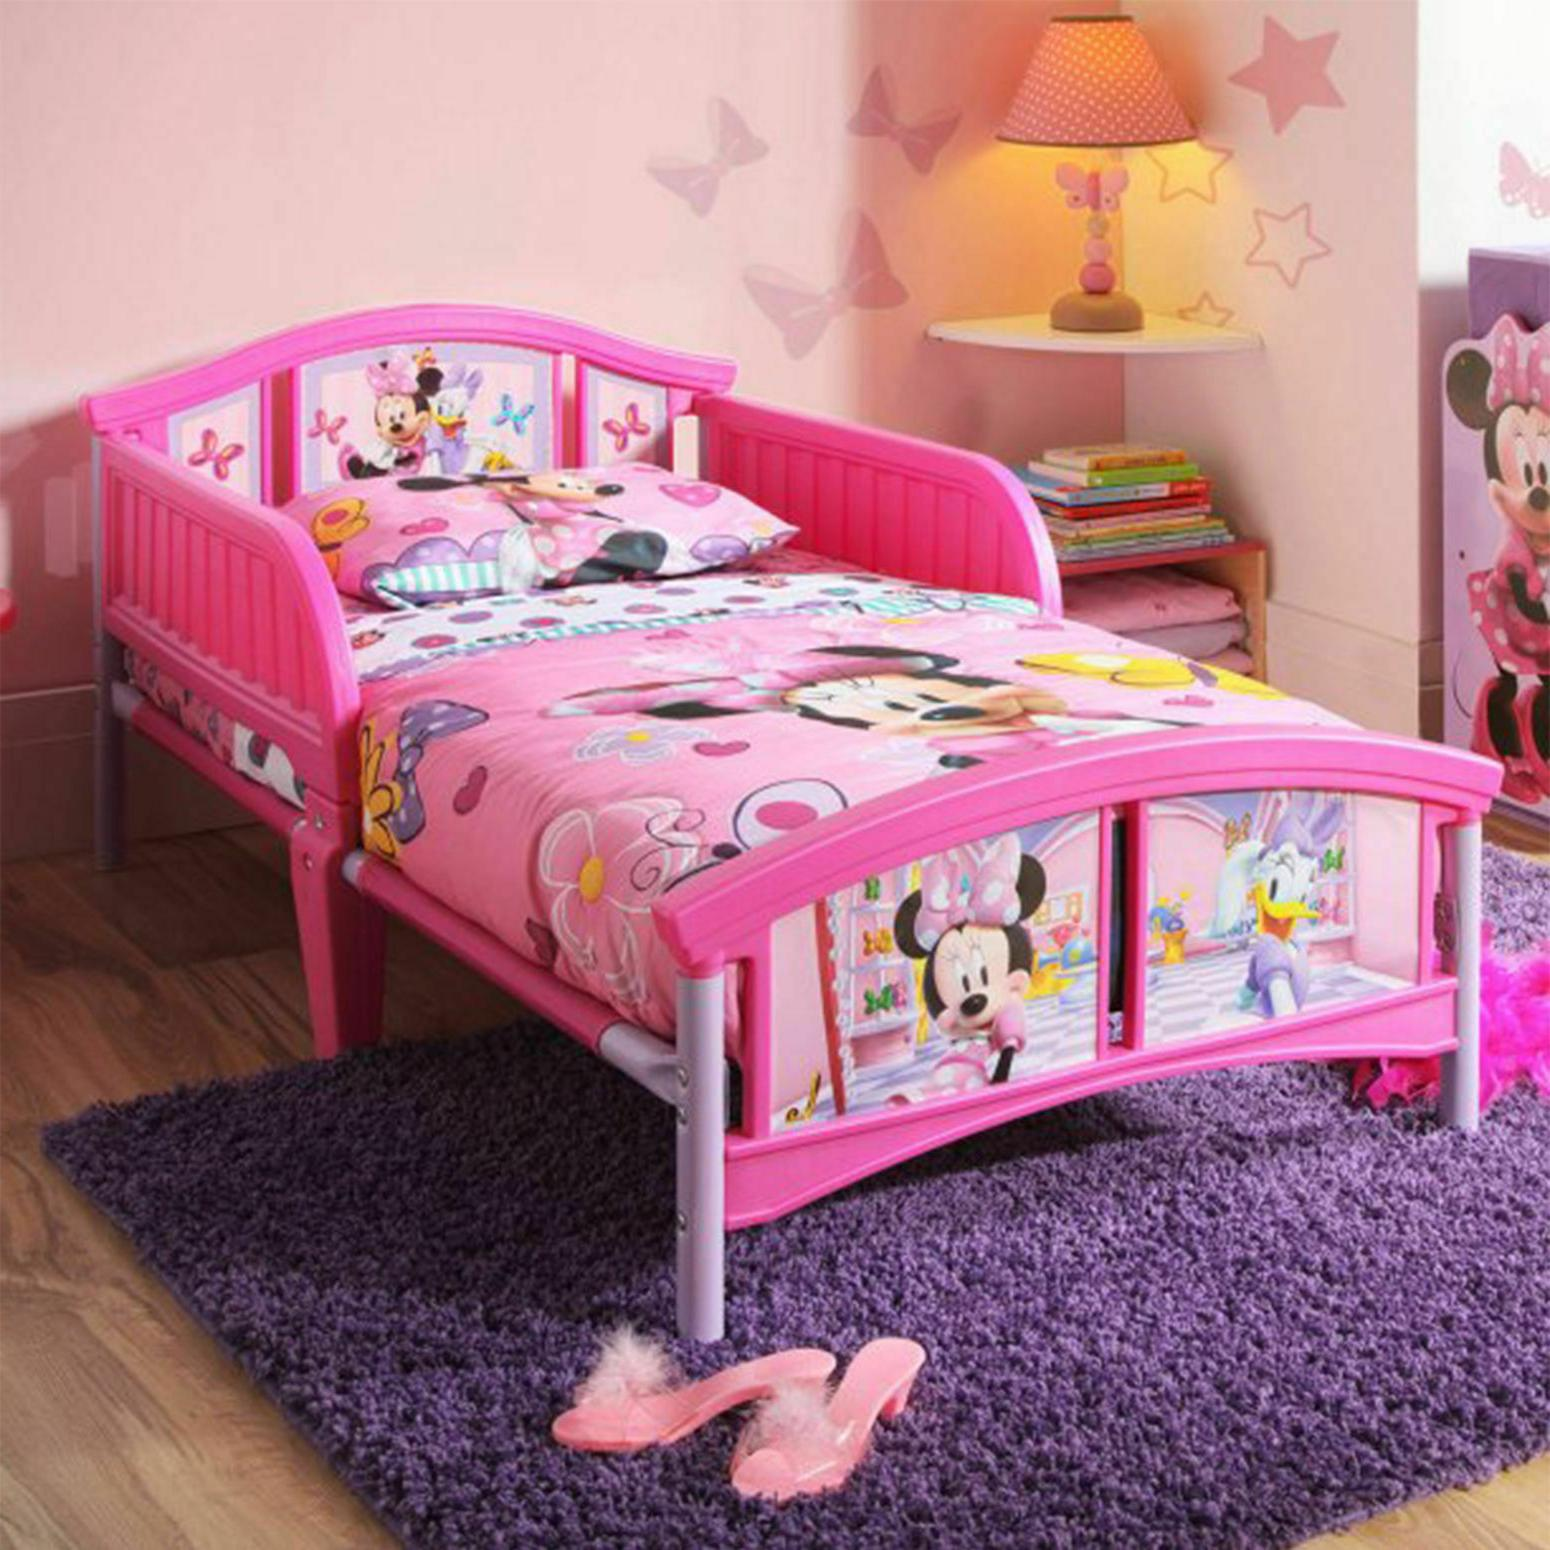 Delta Children Minnie Mouse Toddler Bed  Table Chairs Toy Or